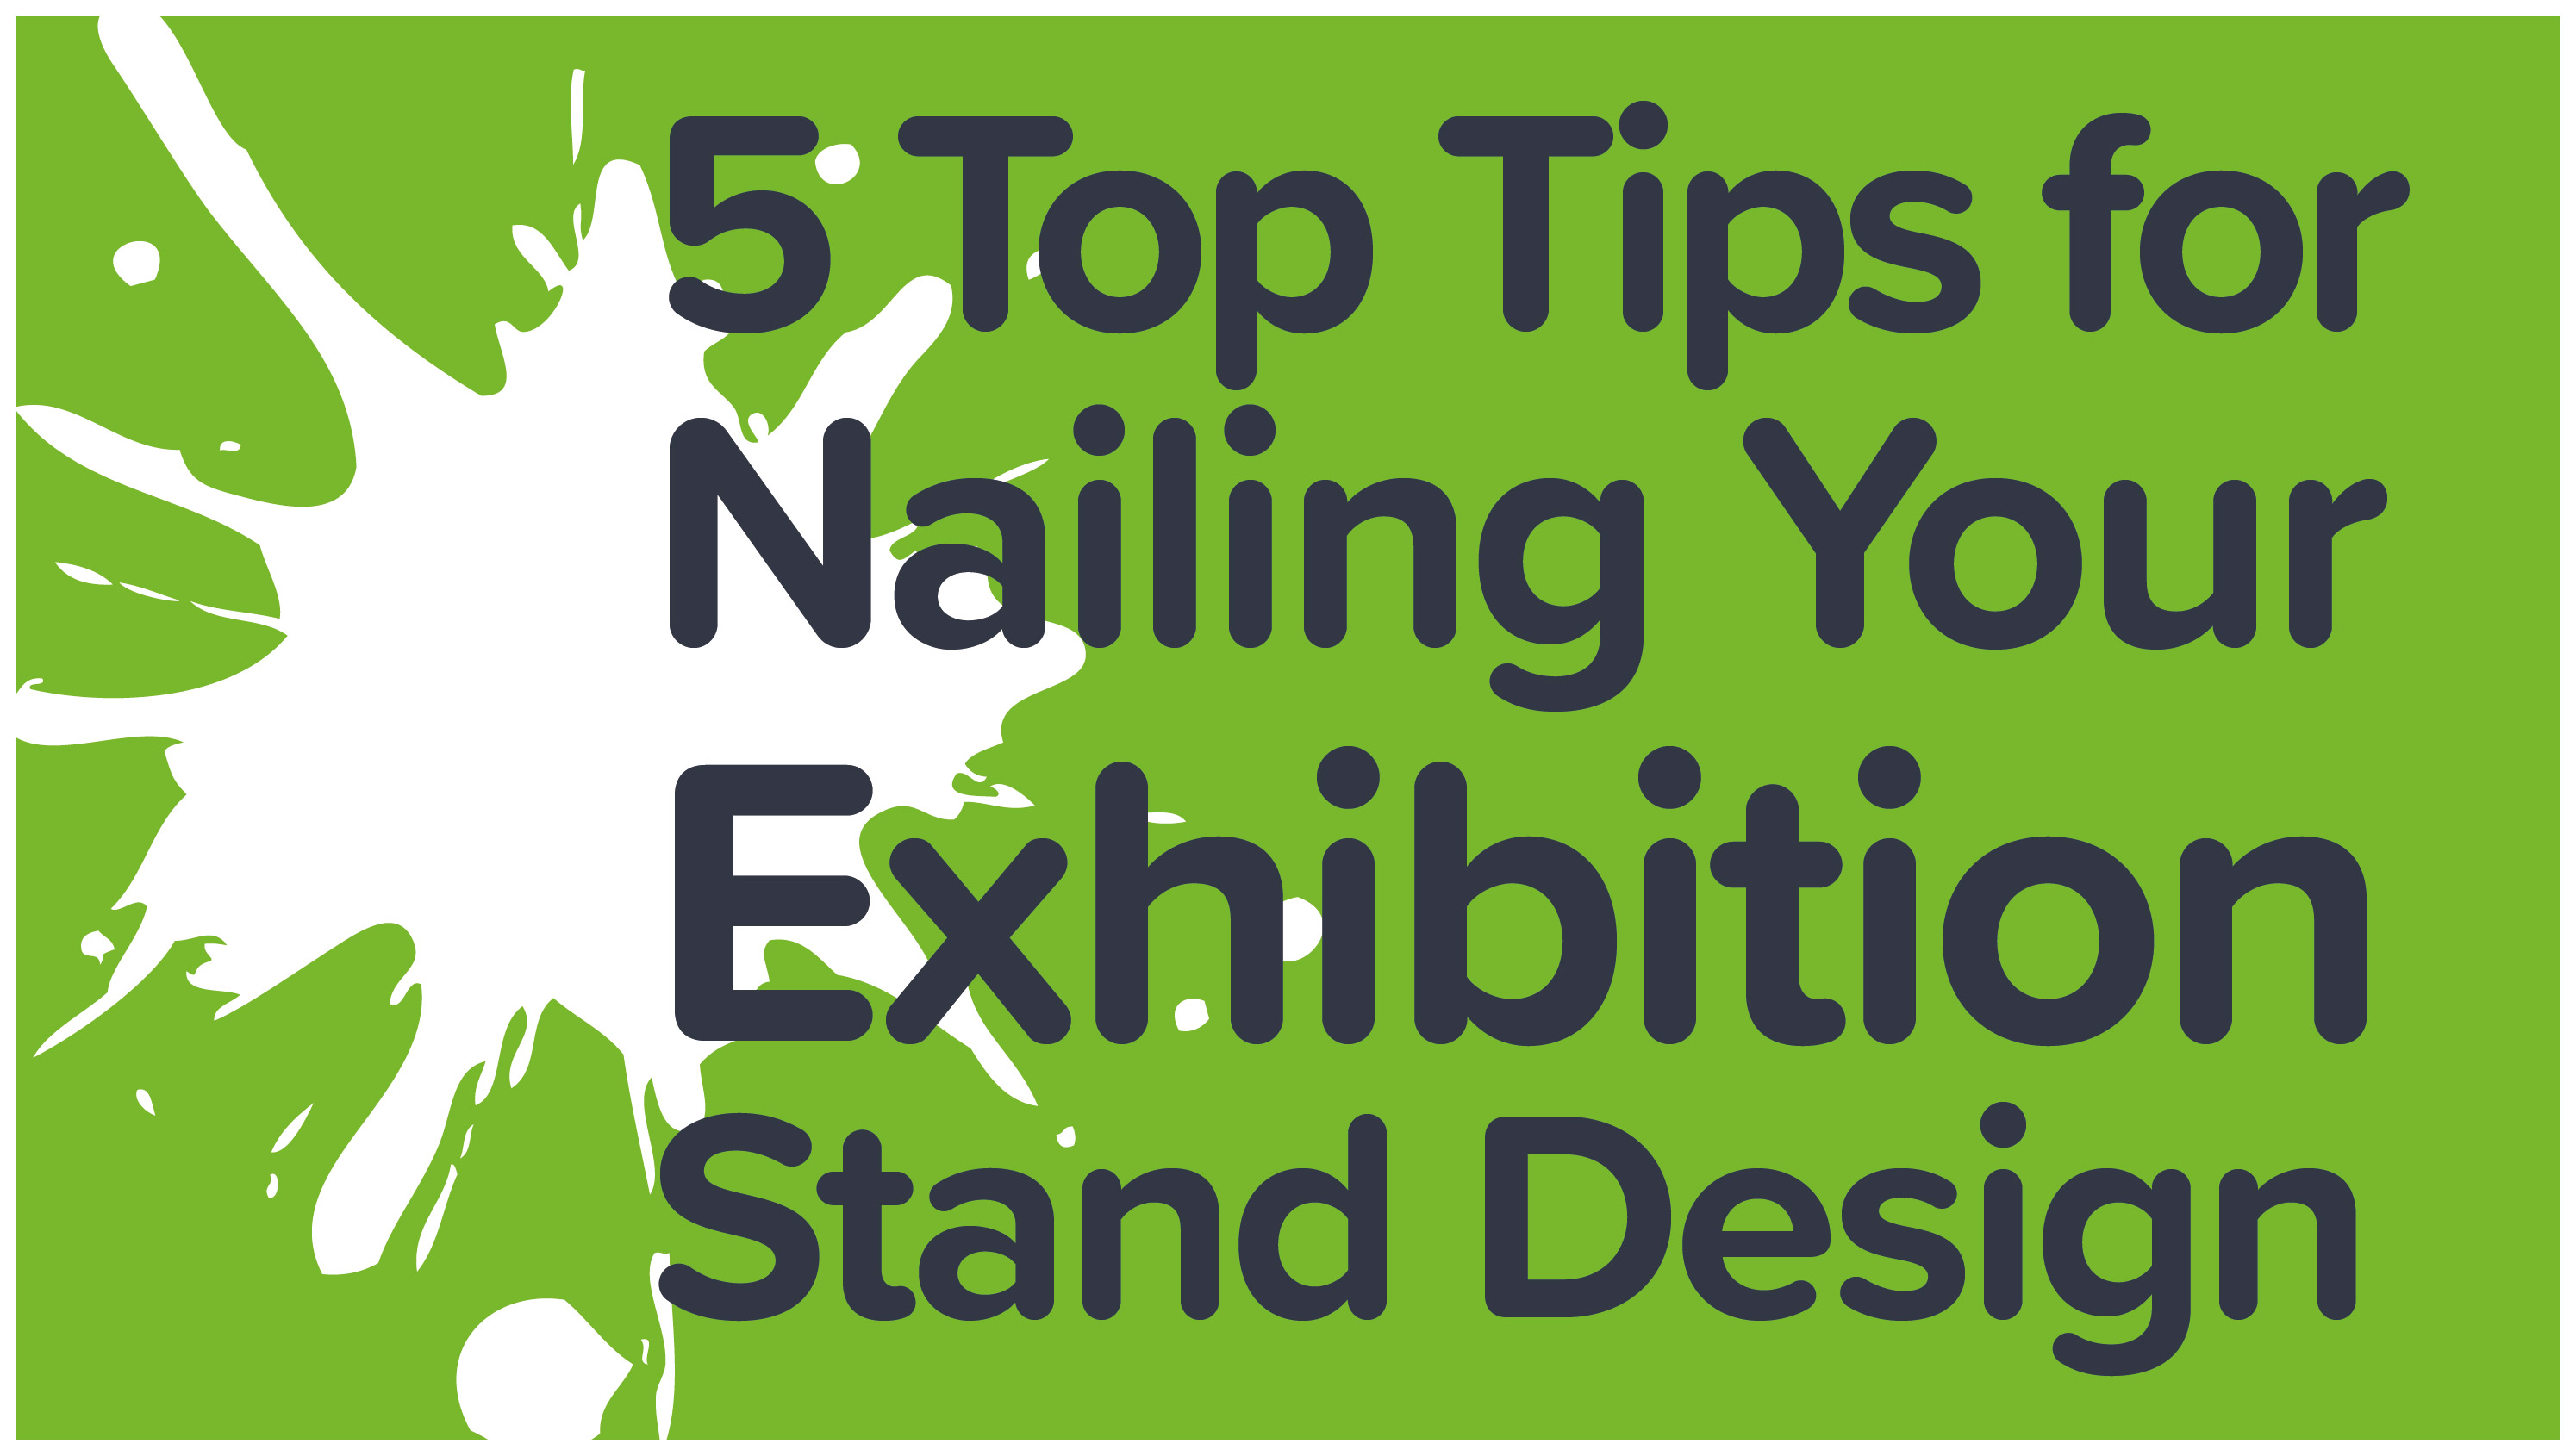 Exhibition Stand Advice : Top tips for nailing your exhibition stand design ink